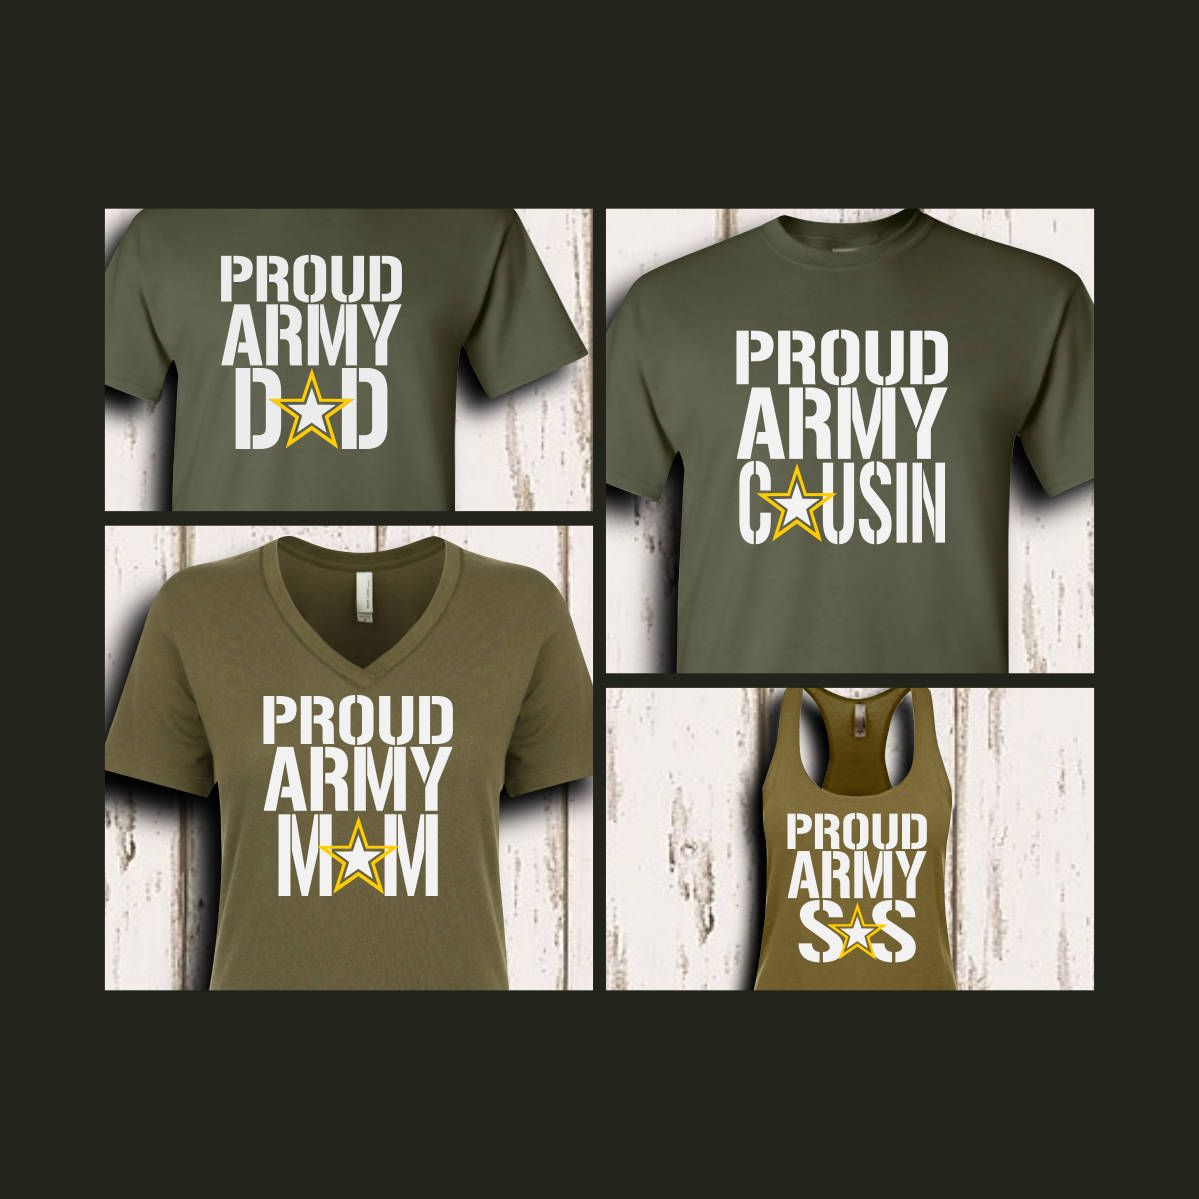 b6d928ce07 Proud Army Family Shirts/Custom Army Shirts/Army Mom/Army Dad/Army Sister/  Army Girlfriend